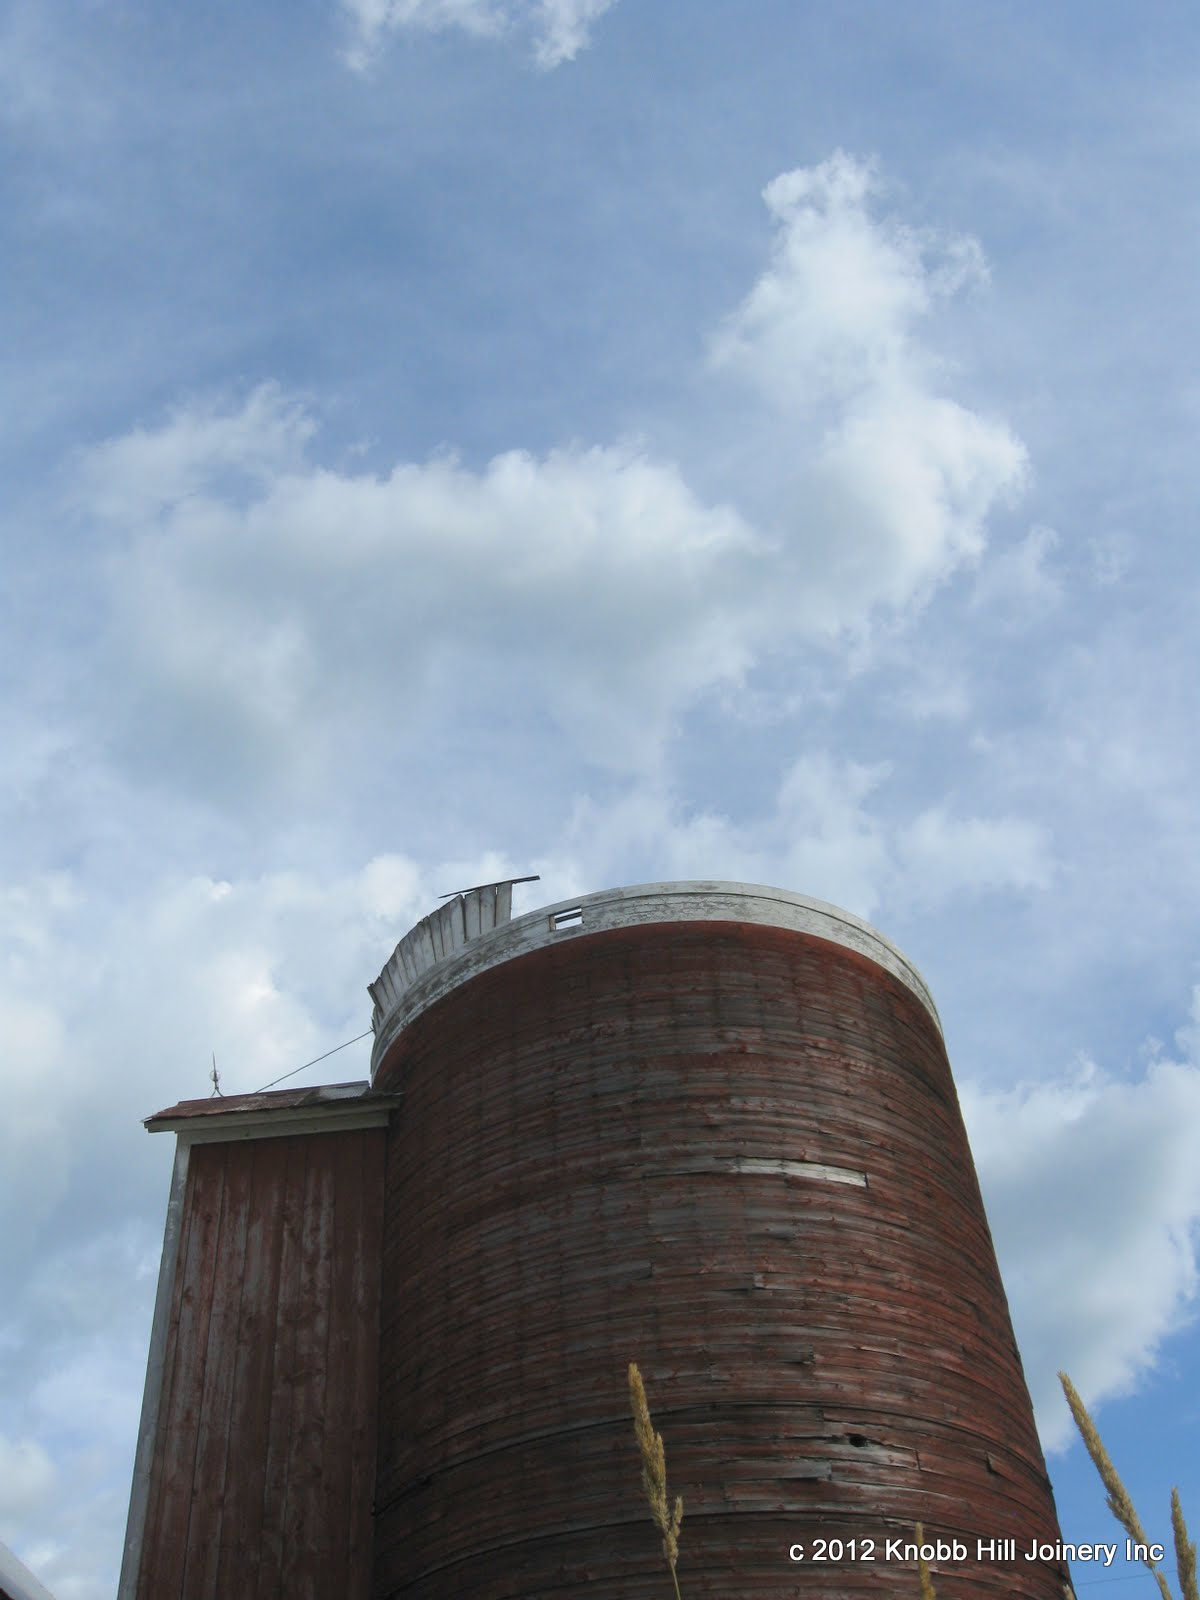 After years of neglect, the silo roof gave way...